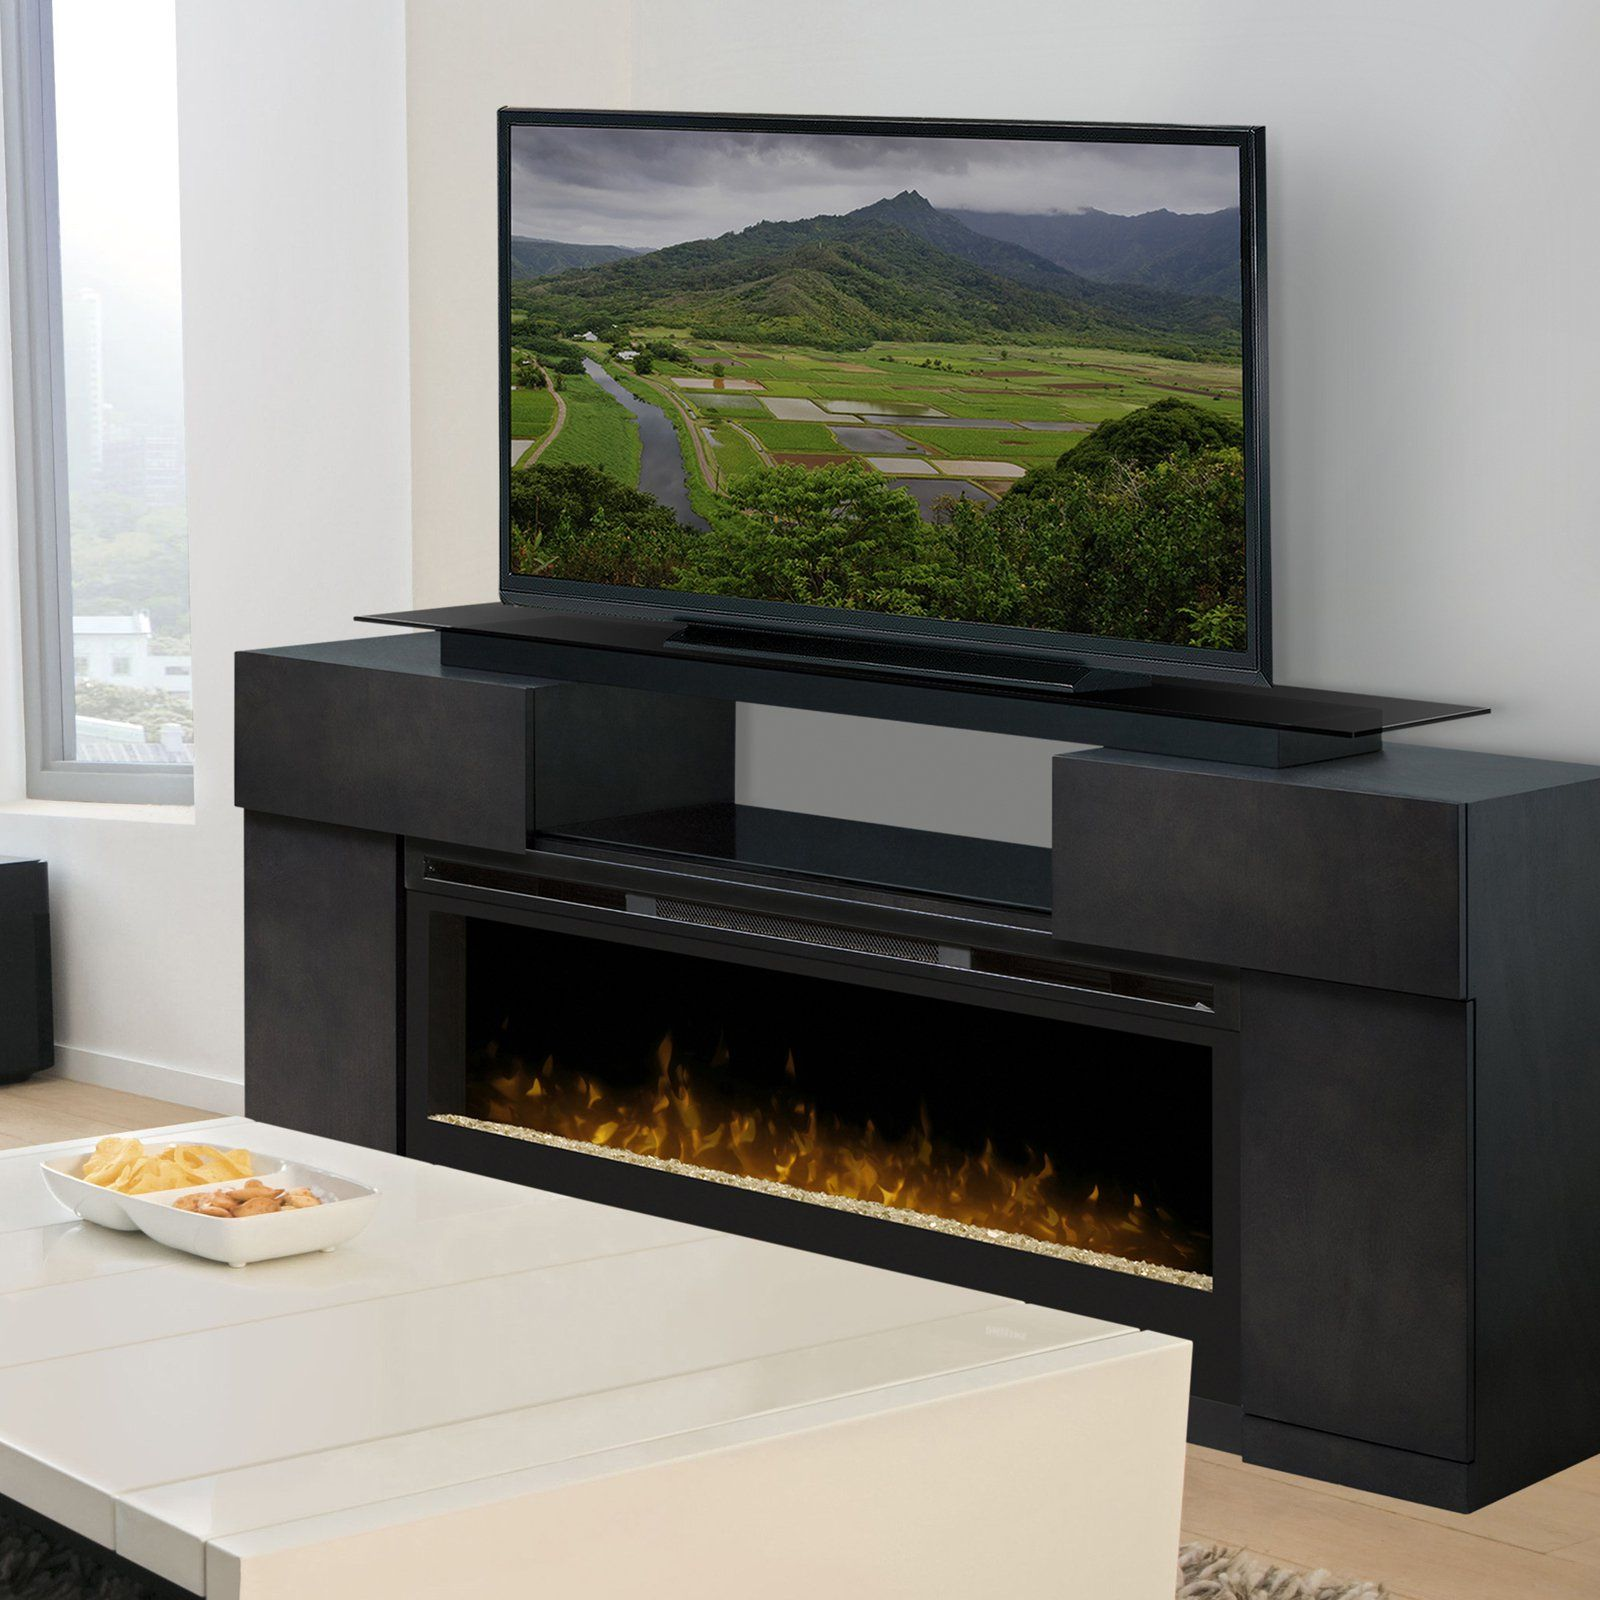 Dimplex concord media electric fireplace gdssc products